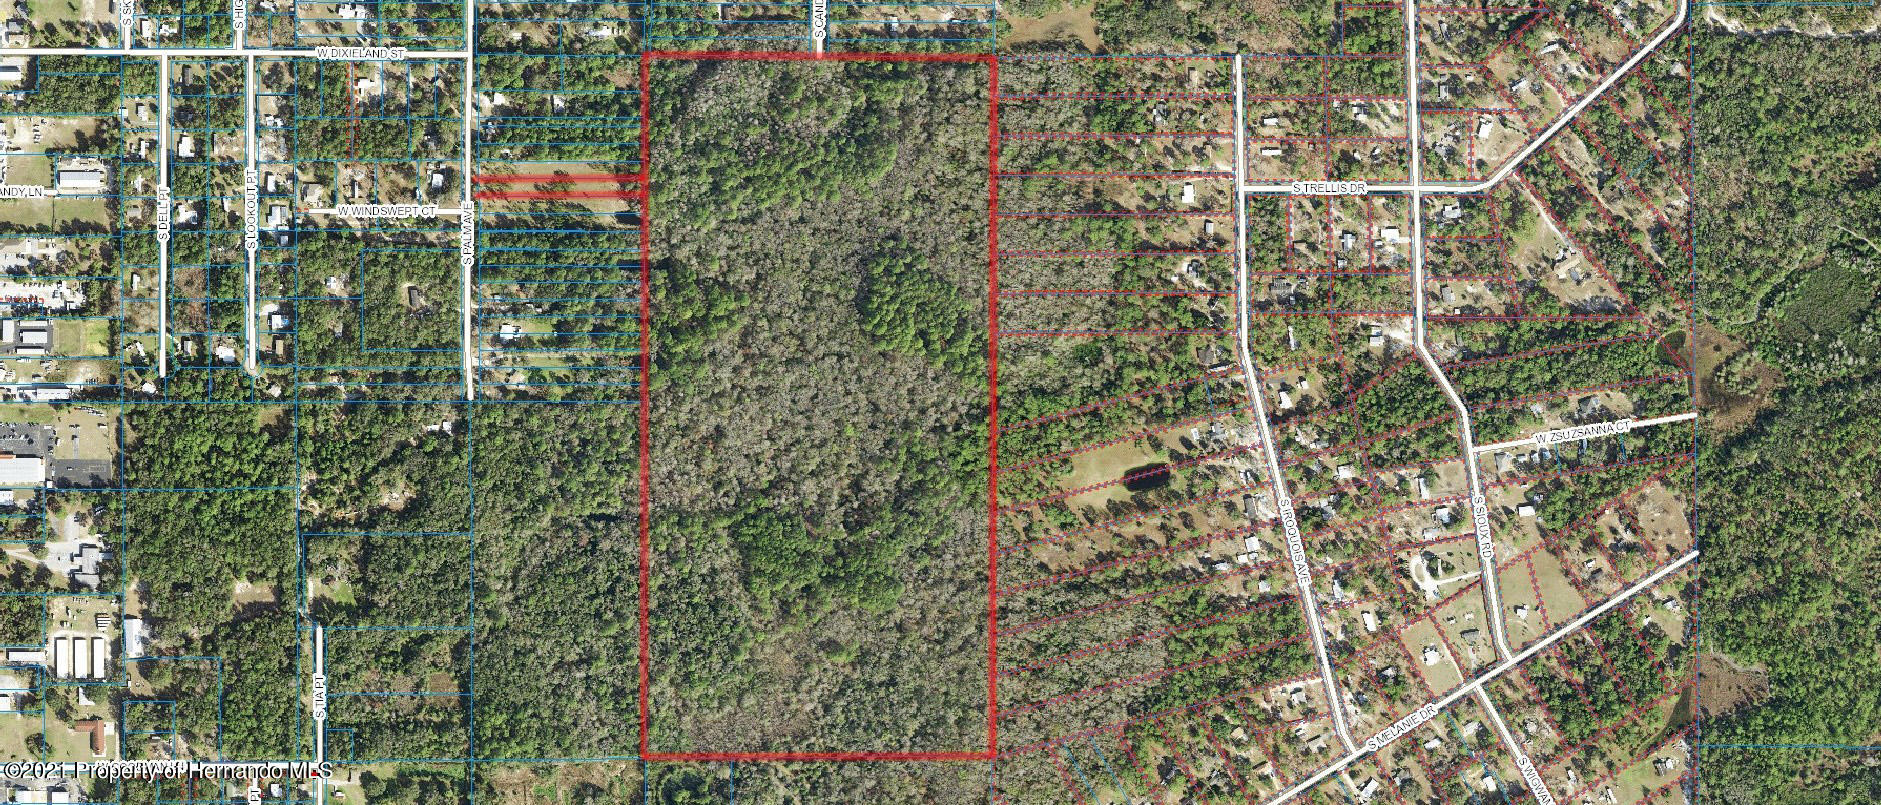 Details for 1500 S Candlenut &1627 S Palm Ave, Homosassa, FL 34448